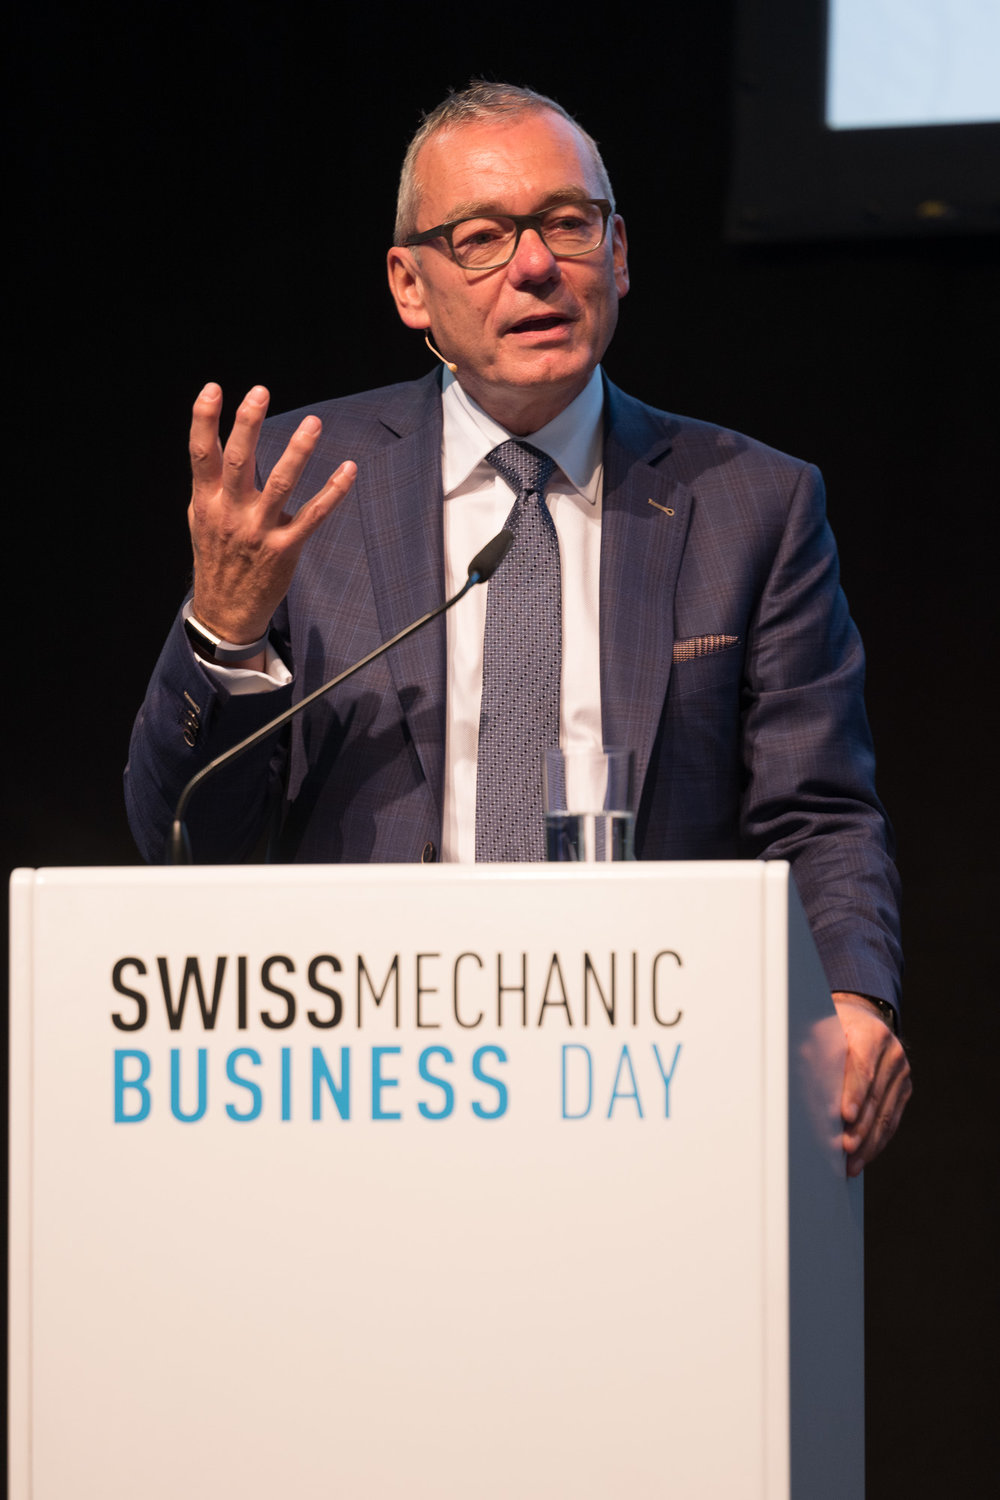 20170914_swissmechanic_businessday_P1050385.jpg